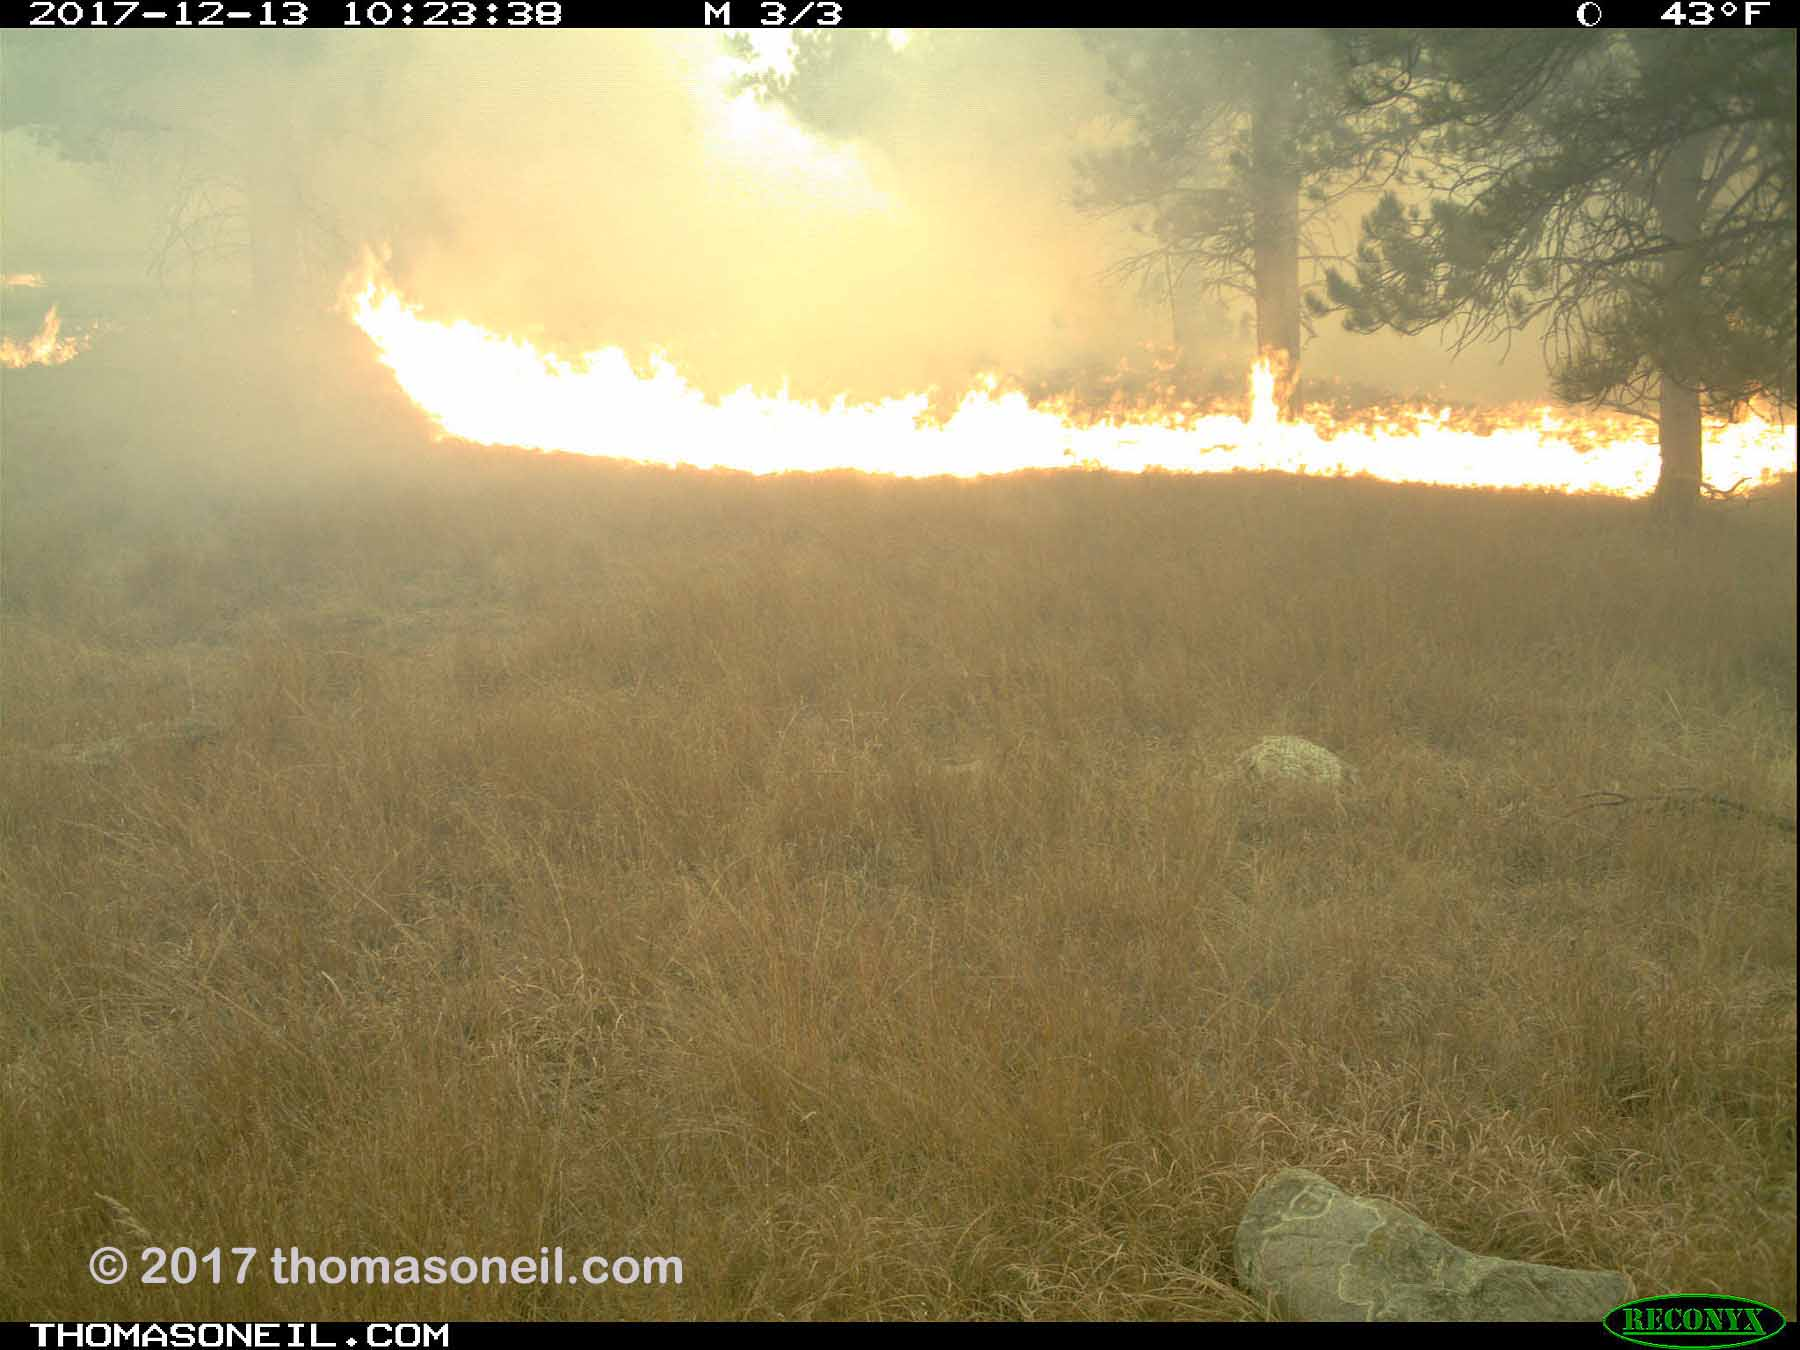 Just 30 seconds after the previous image, fire starts to engulf tree at center-right, Wind Cave National Park.